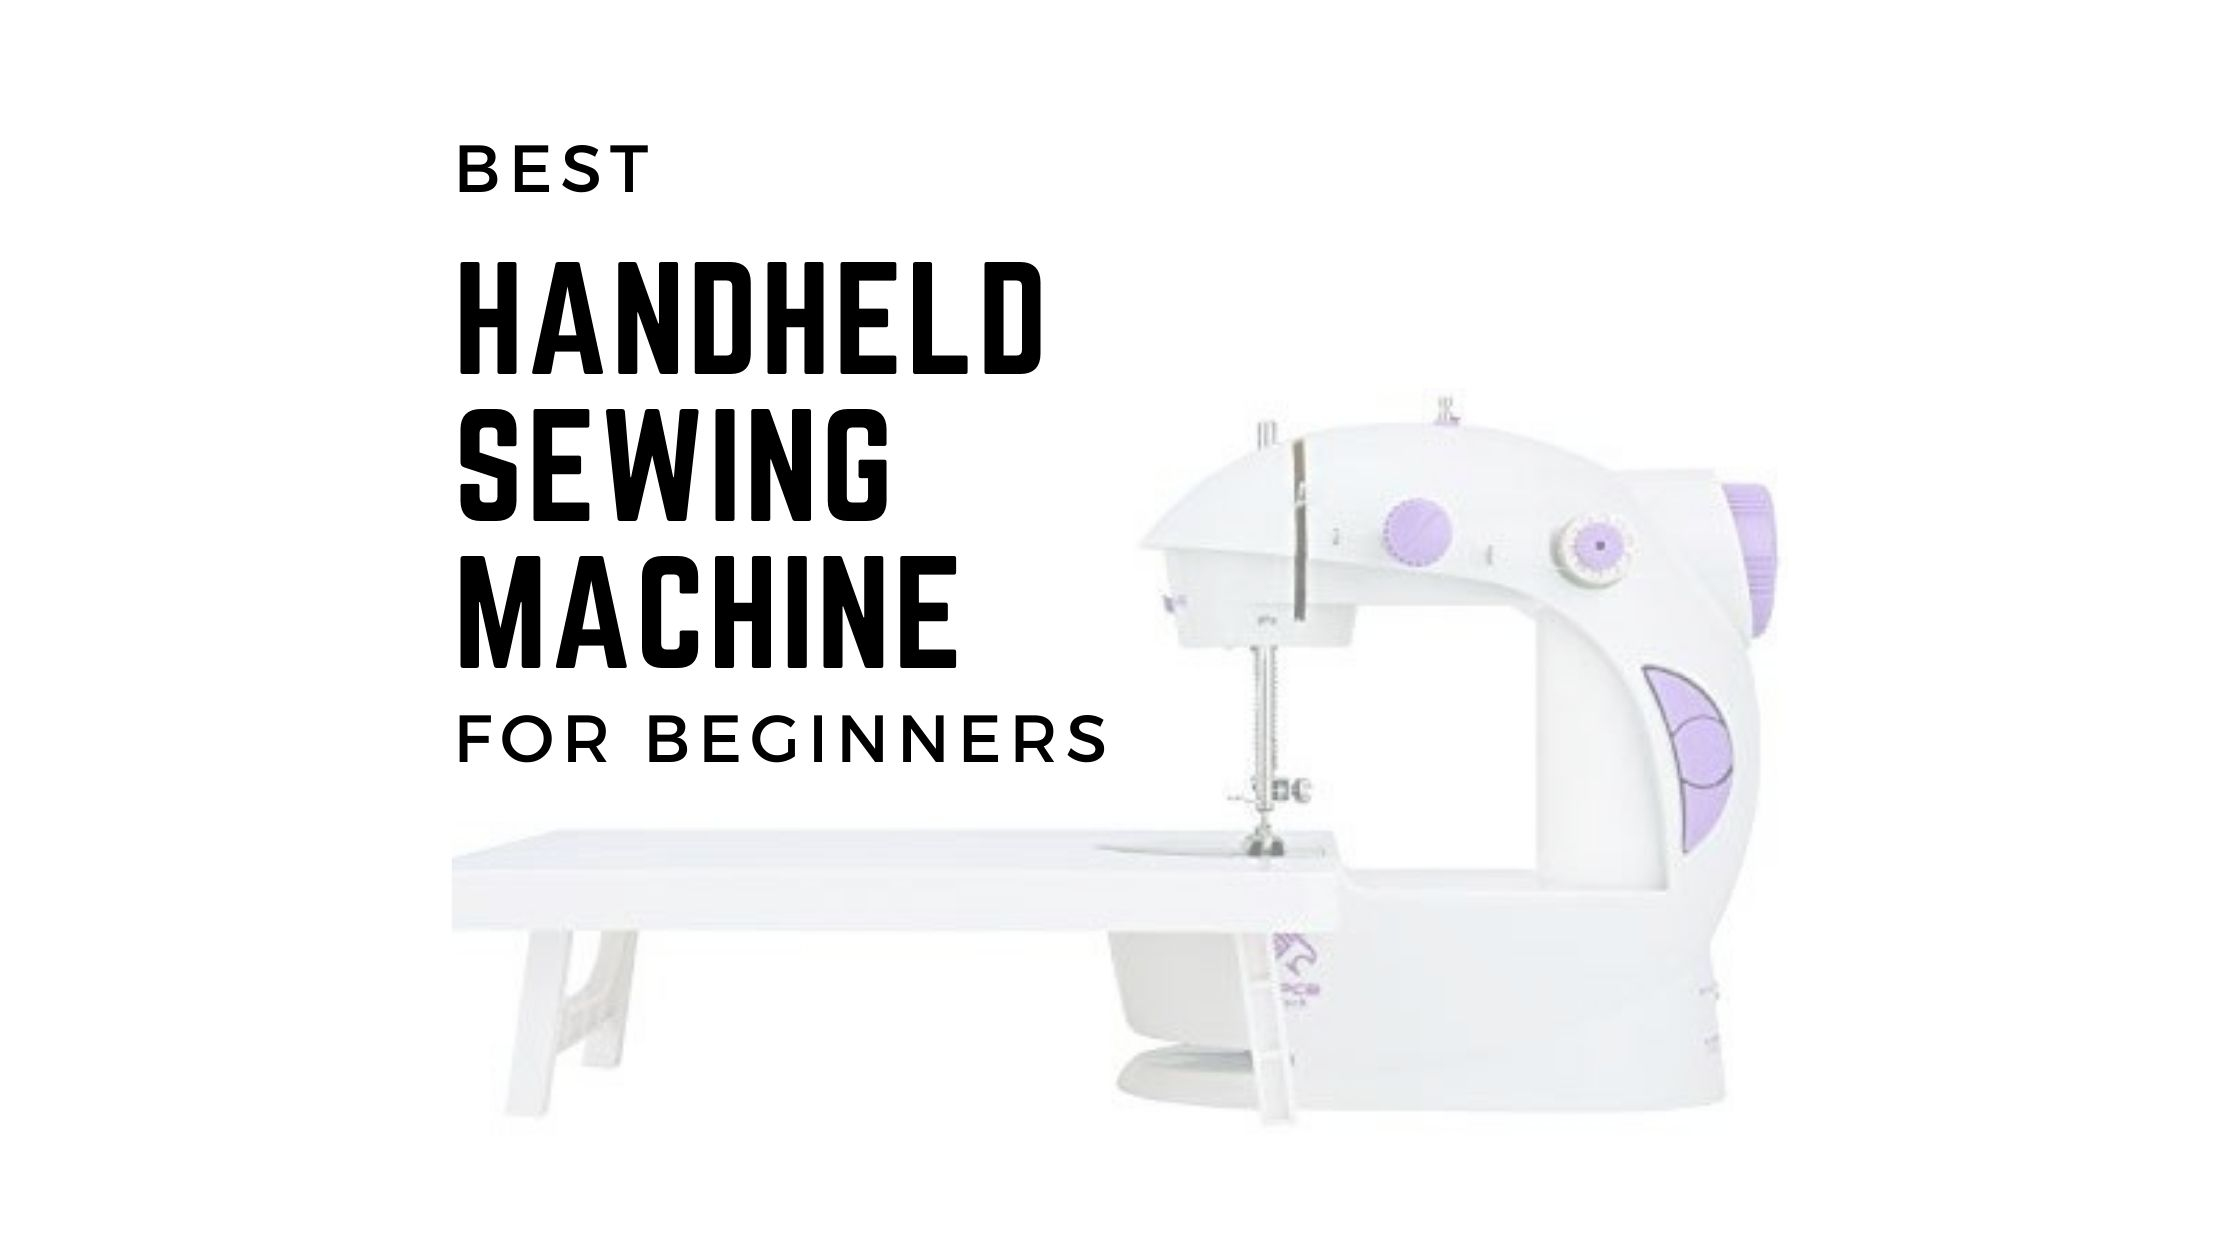 Best Handheld Sewing Machine for Beginners